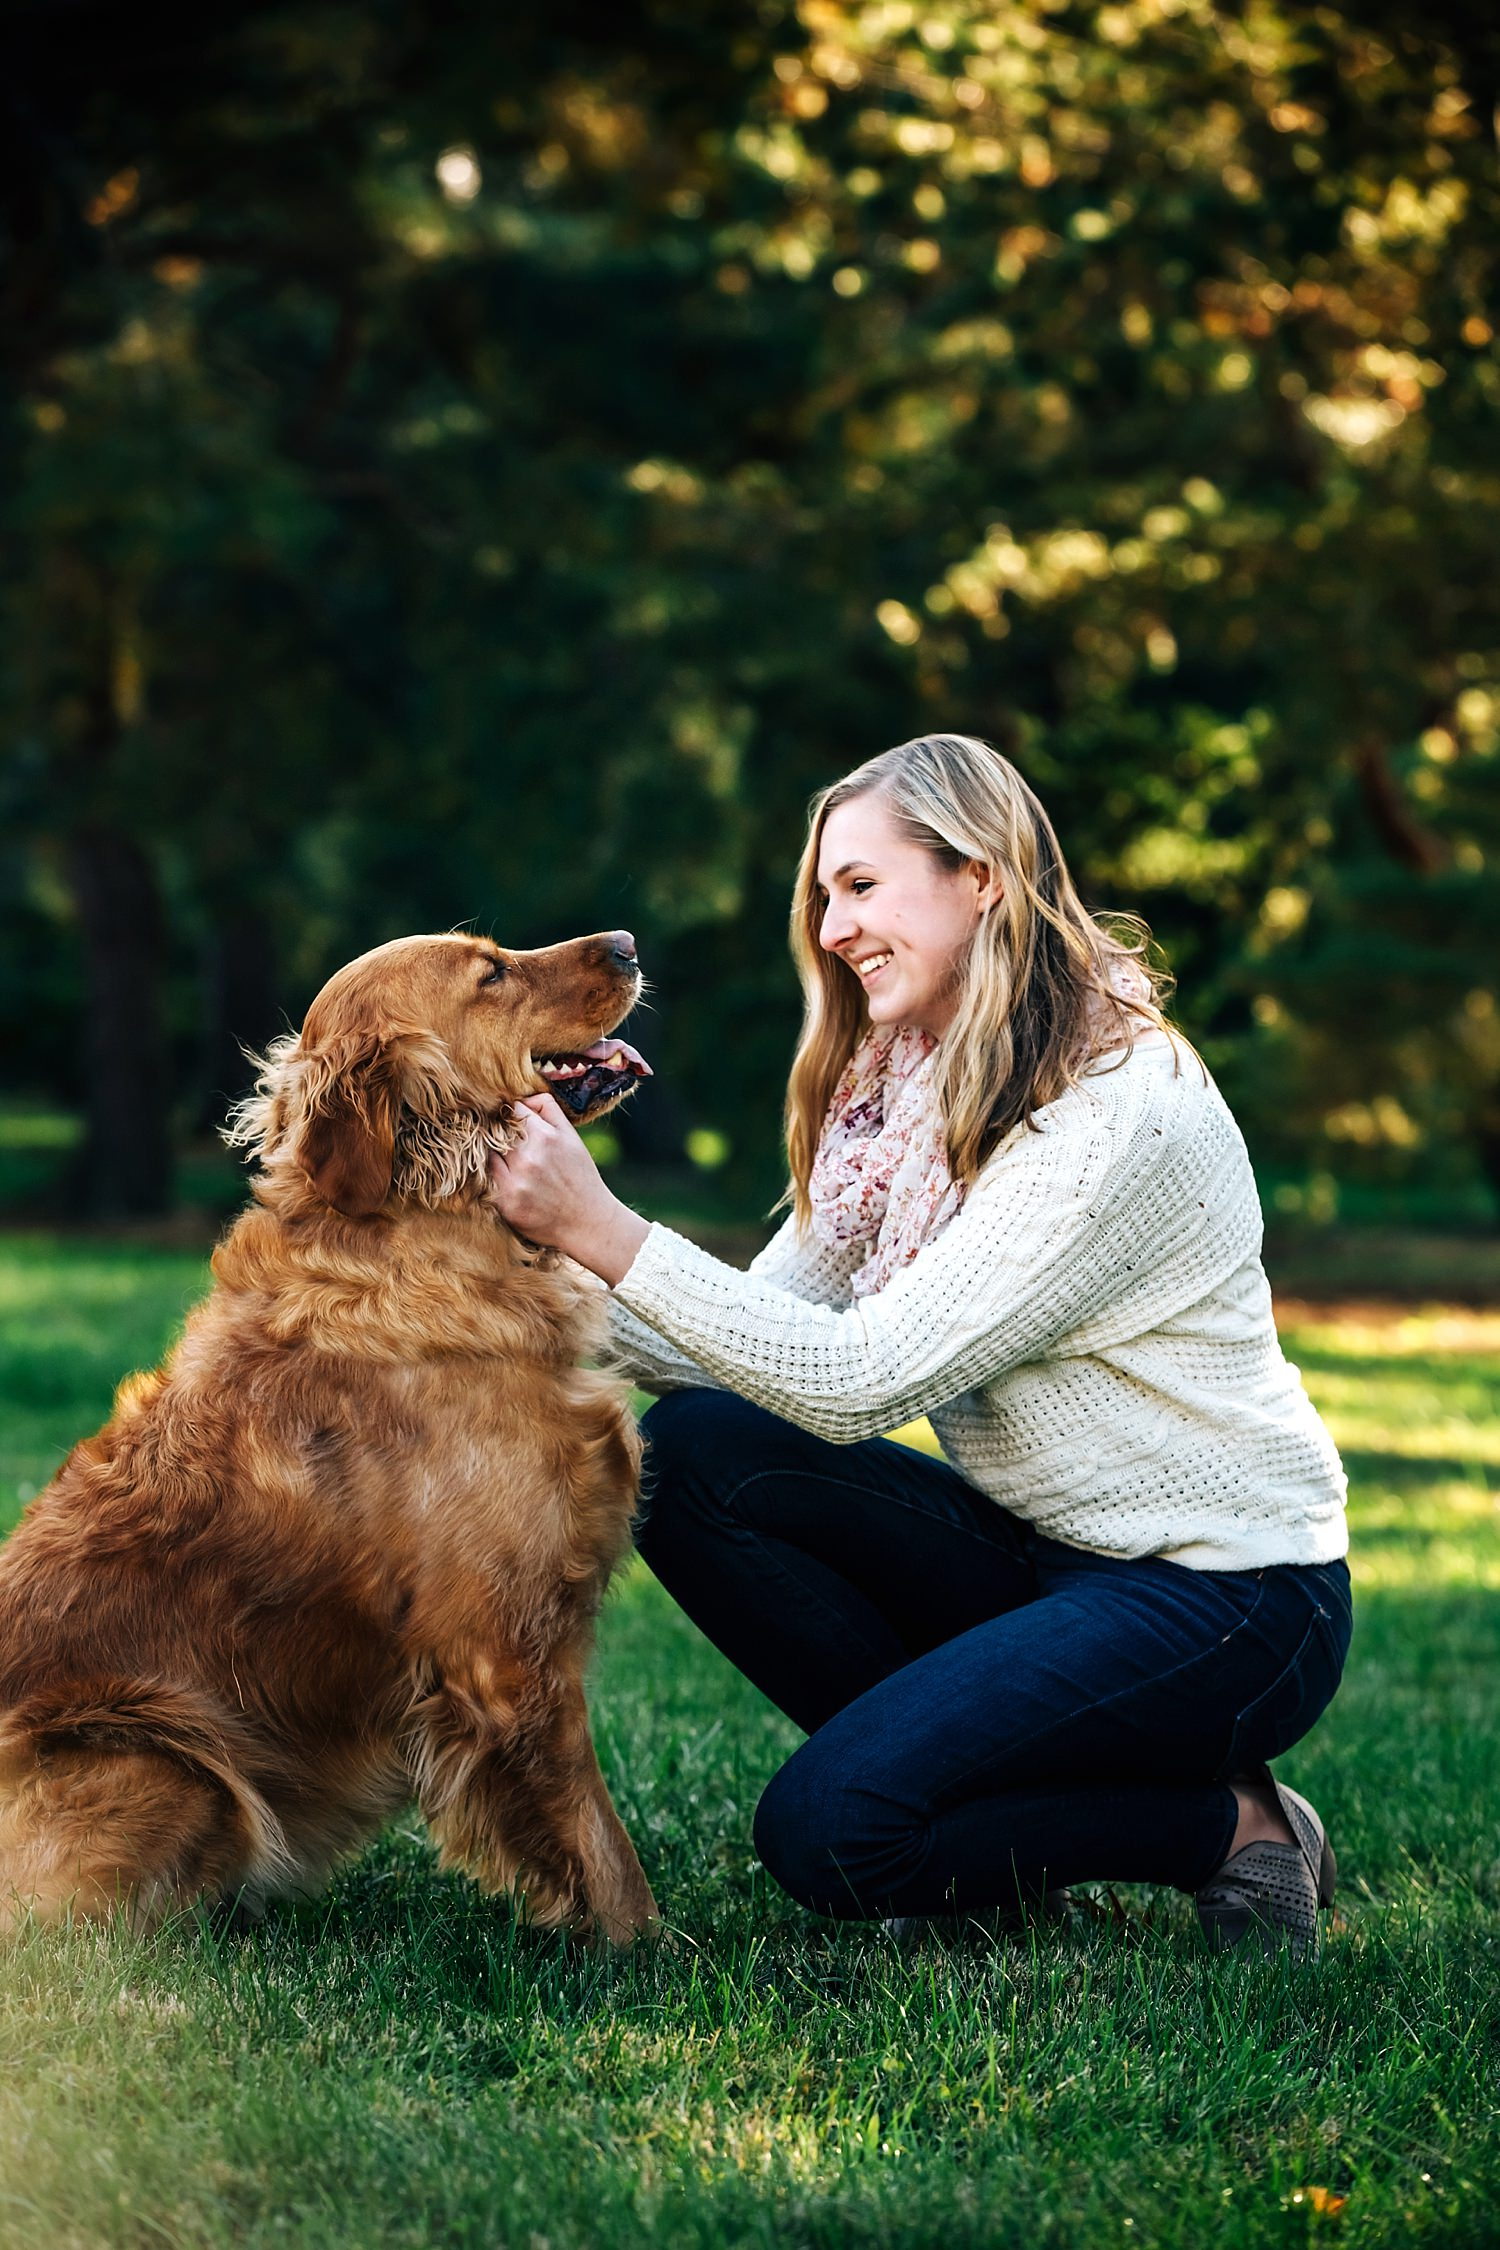 senior portrait with girl and dog outside by sara devere